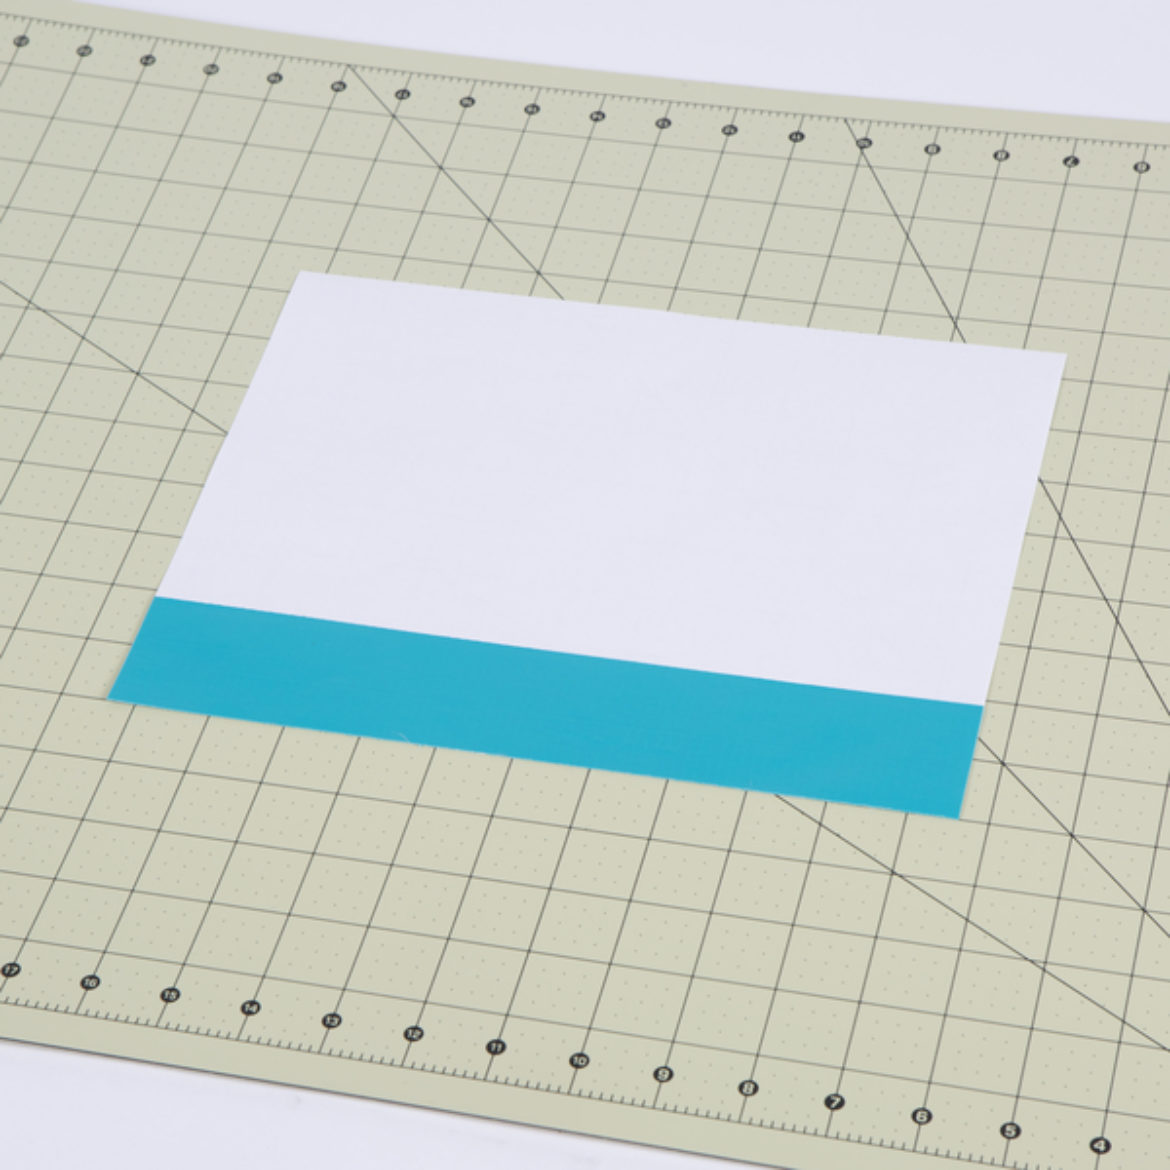 Small rectangular piece of poster board covered in Duck Tape without overlapping strips, so that you can cut them out later